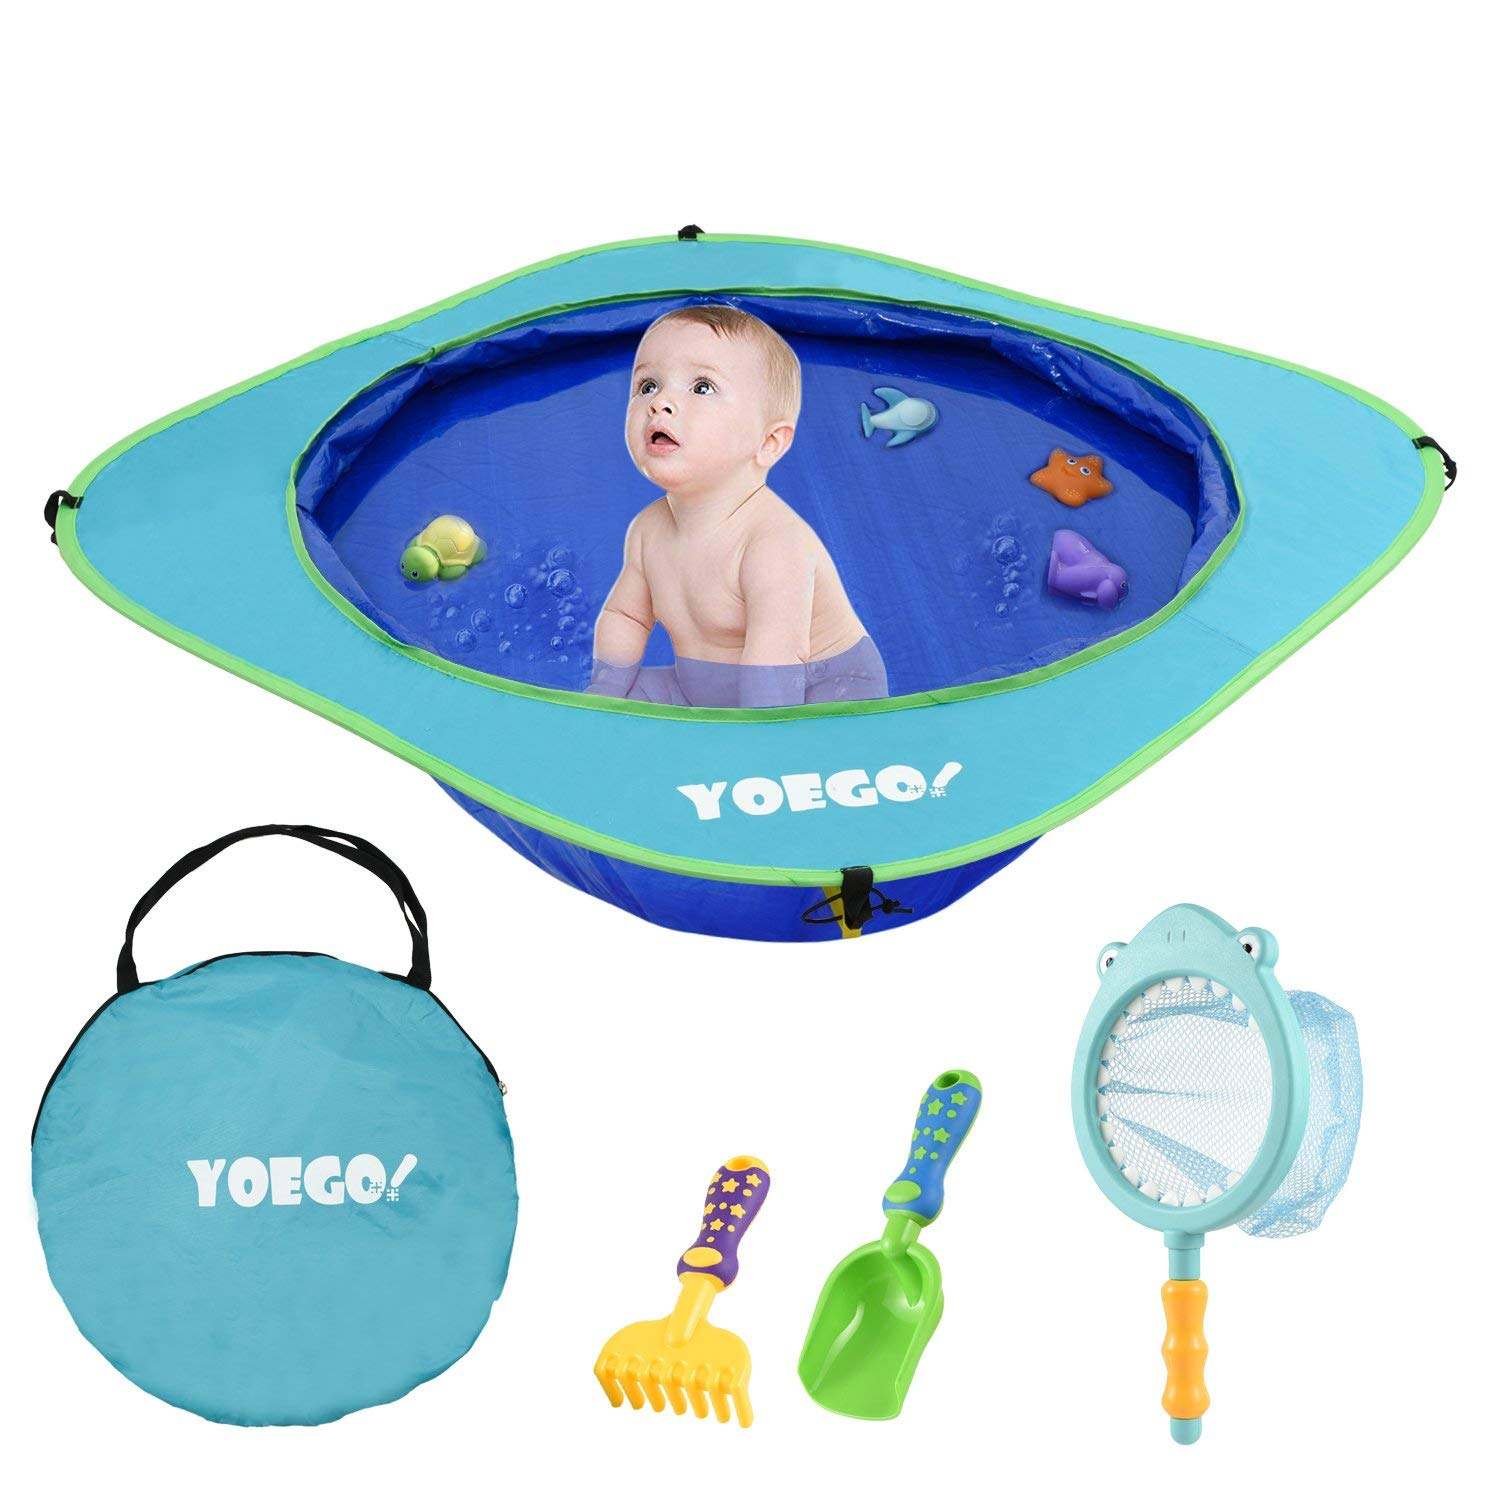 Yoego portable baby beach swimming pool, with baby sand toys including fish net and toy fishes, sand shovel and rake, for babies and toddlers on the beach and indoors